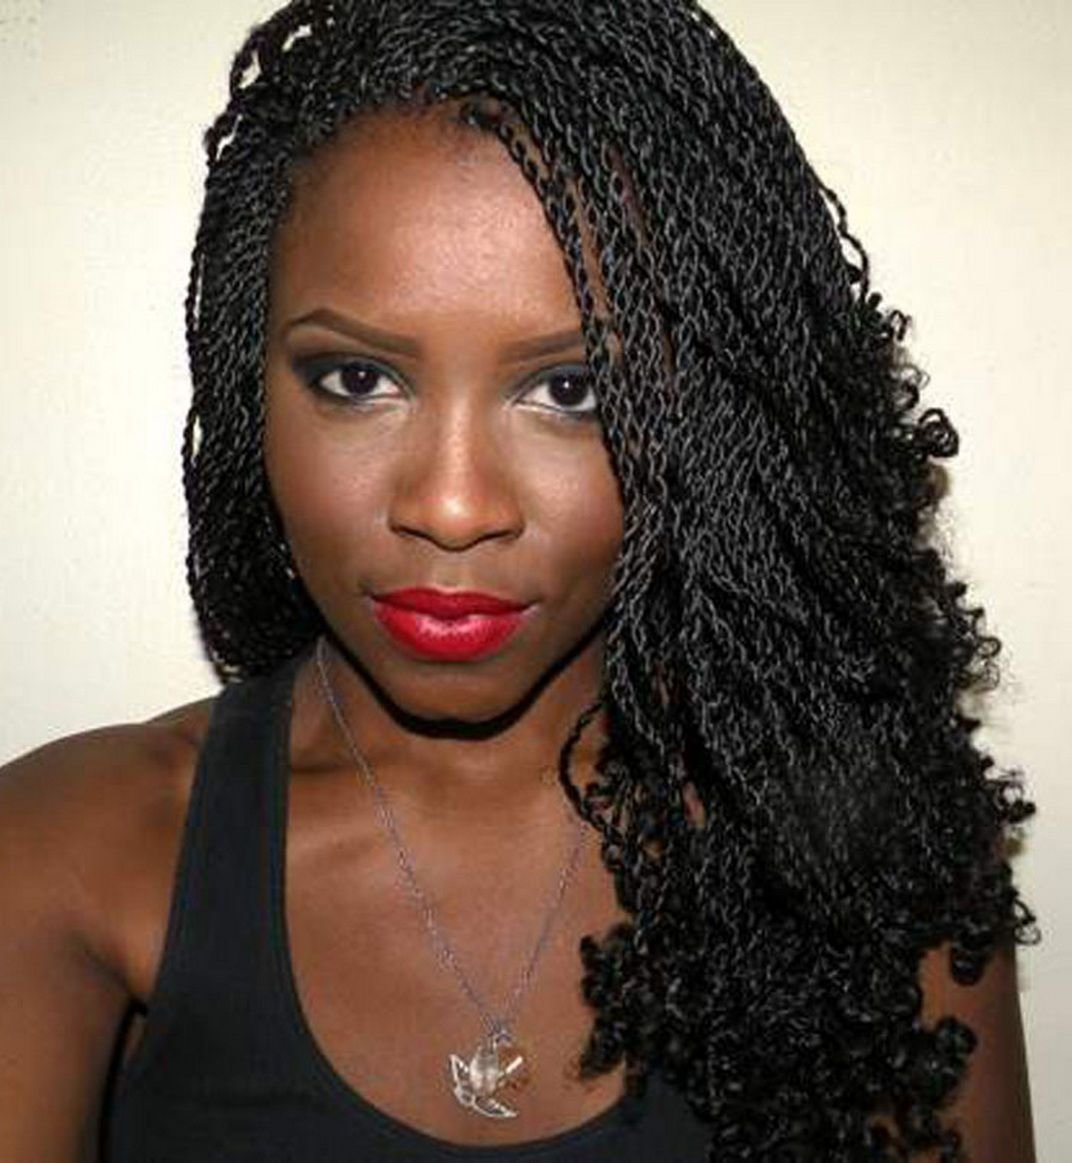 The Best Braided Hairstyles For Black Women Awesome Under Braid Pictures